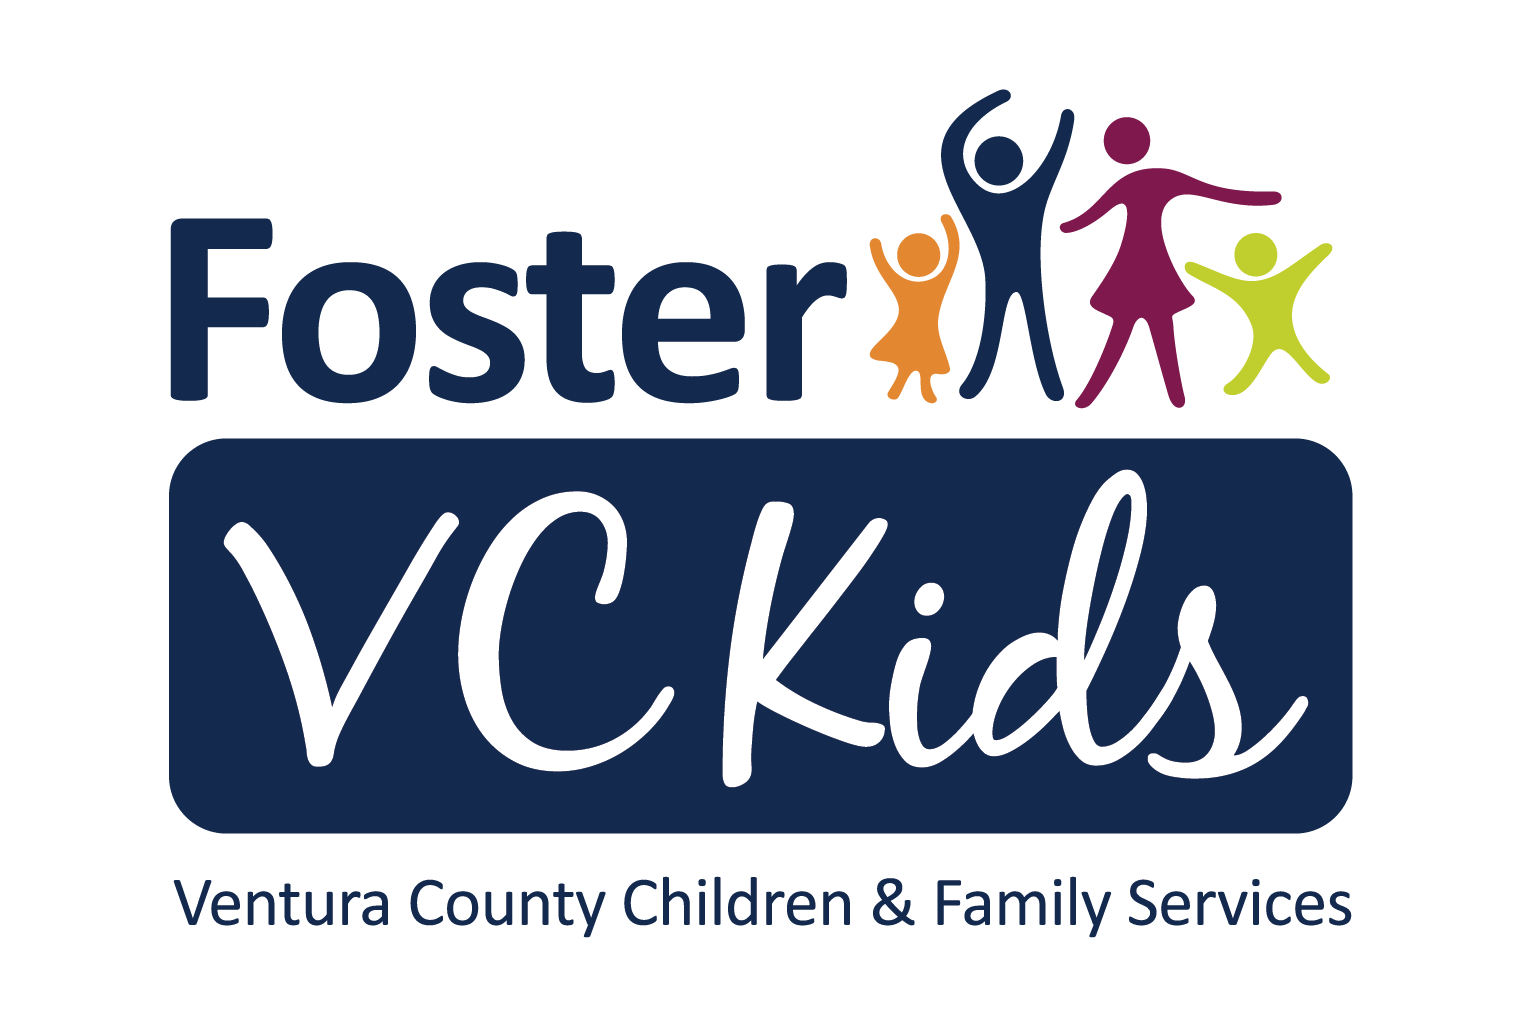 foster_vc_kids_logo_color_VCCFS.png